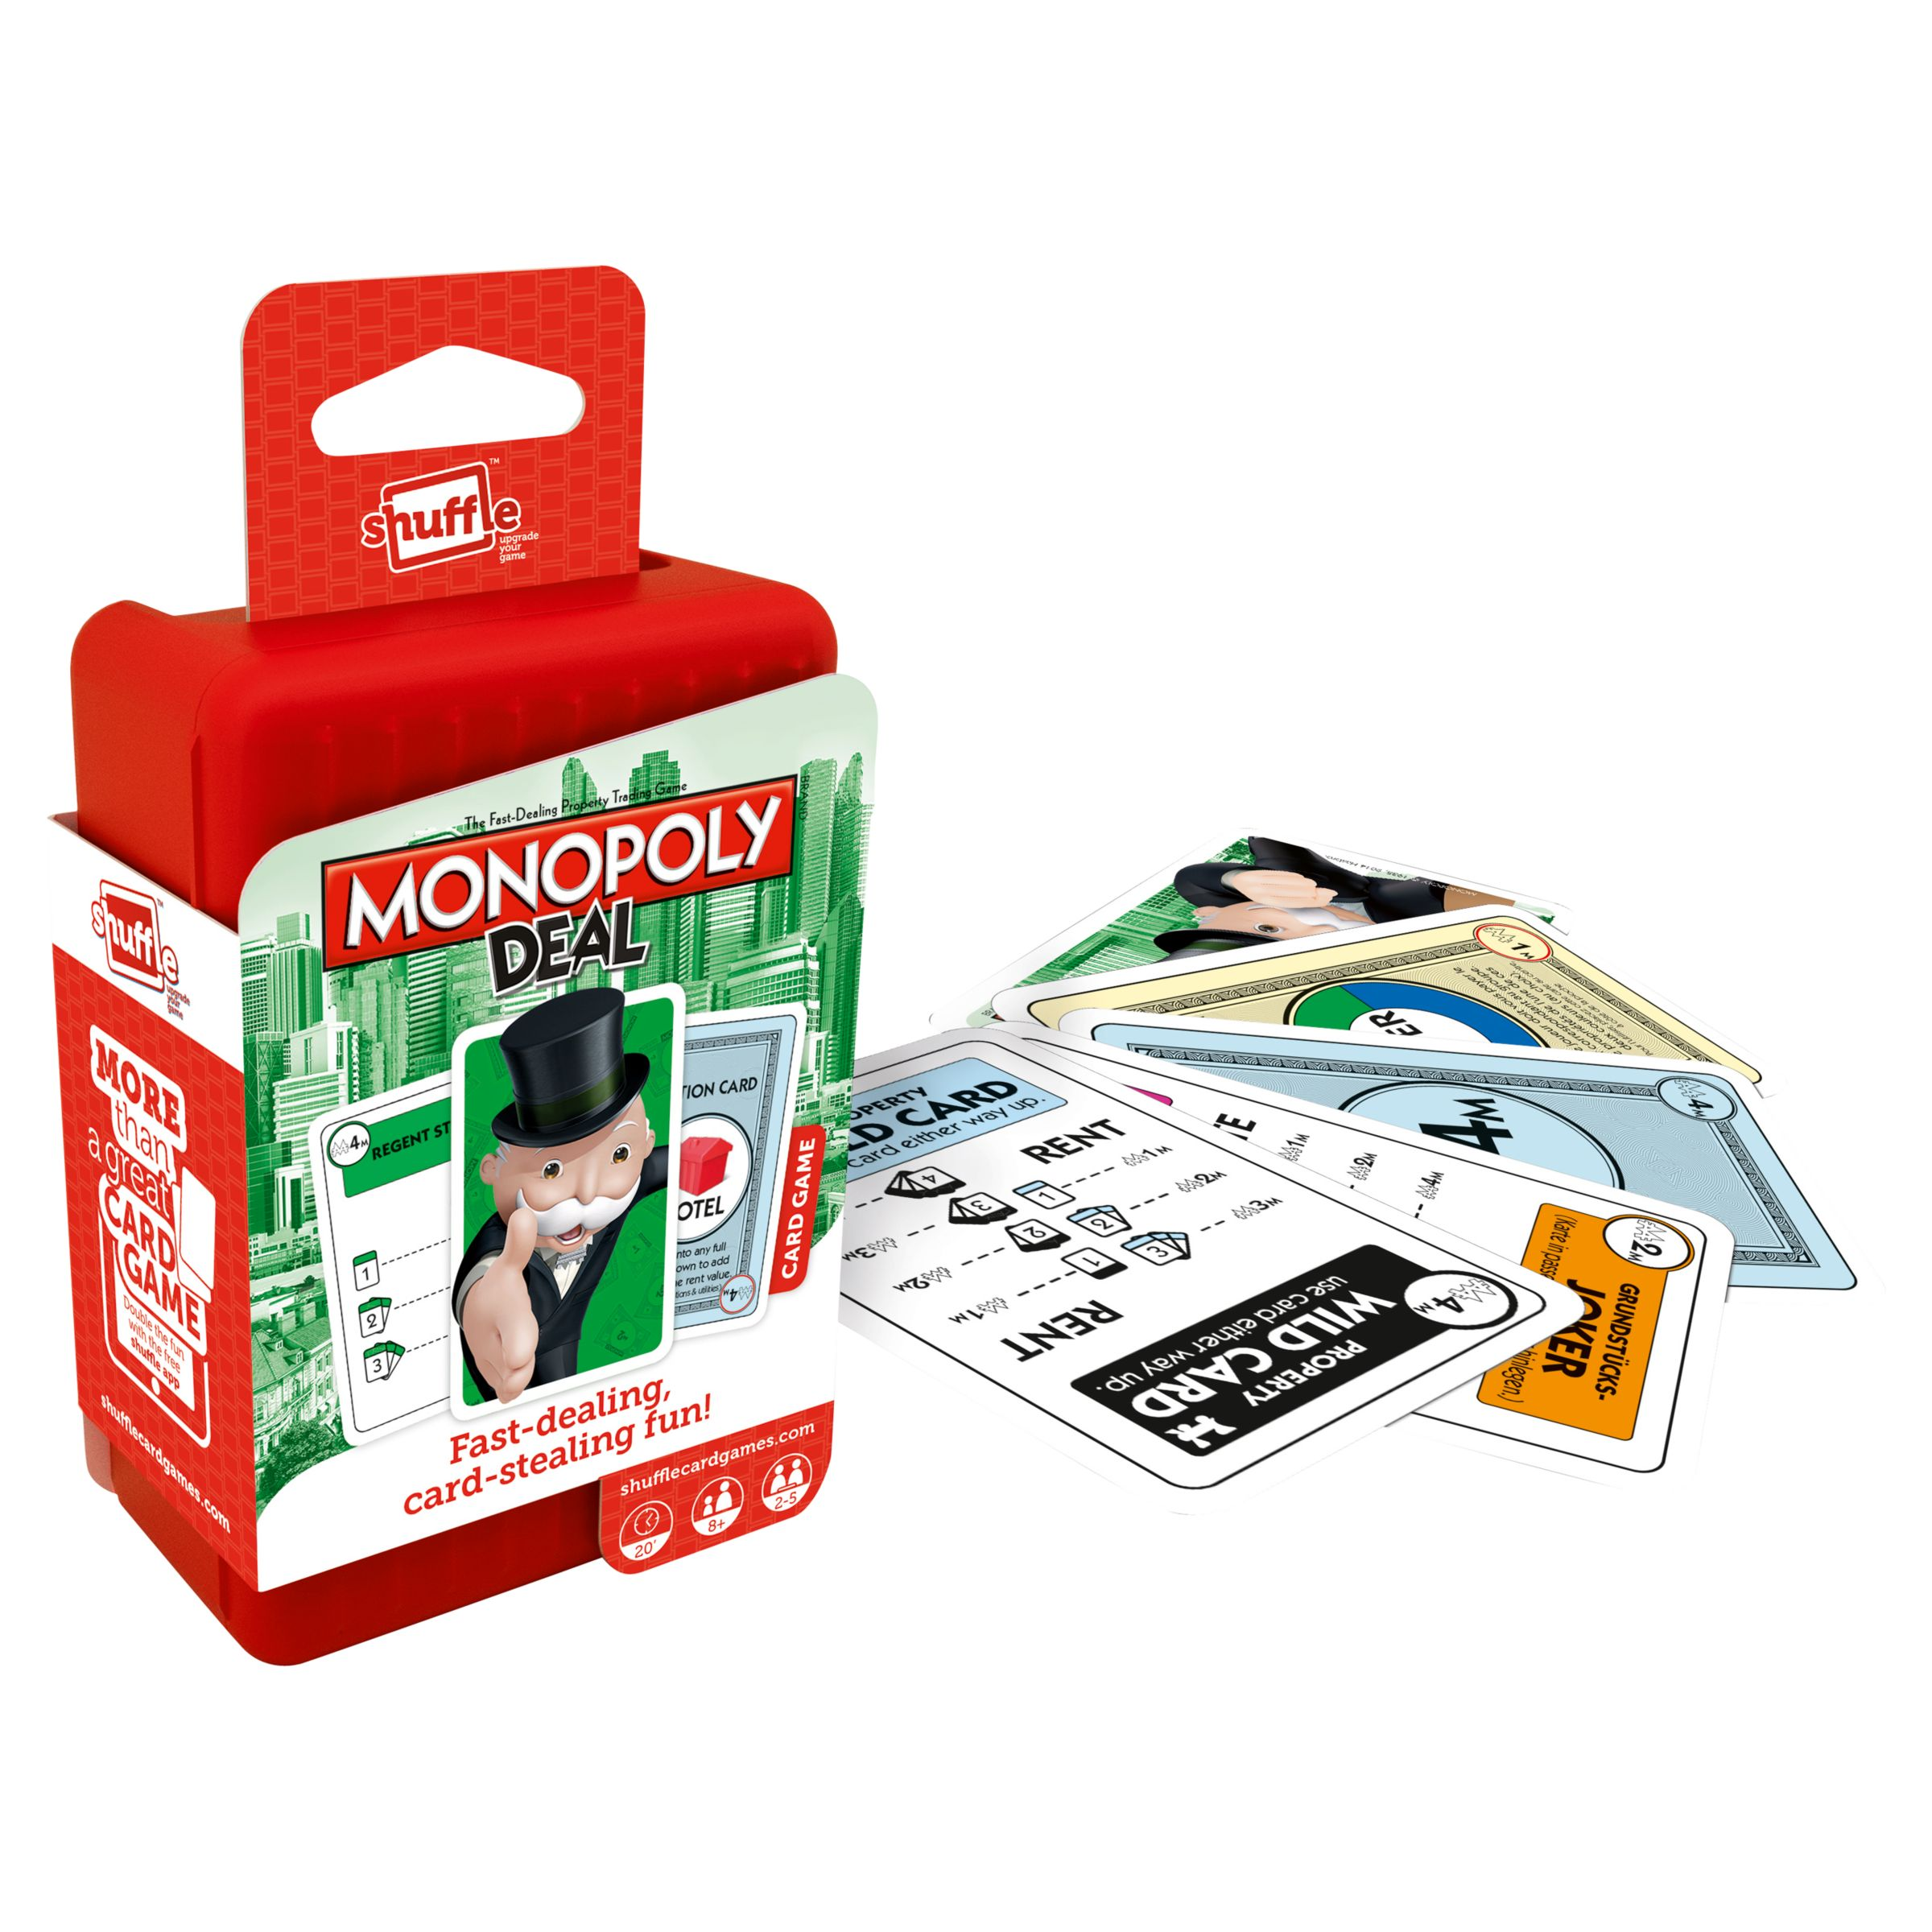 Monopoly Monopoly Deal Shuffle Card Game